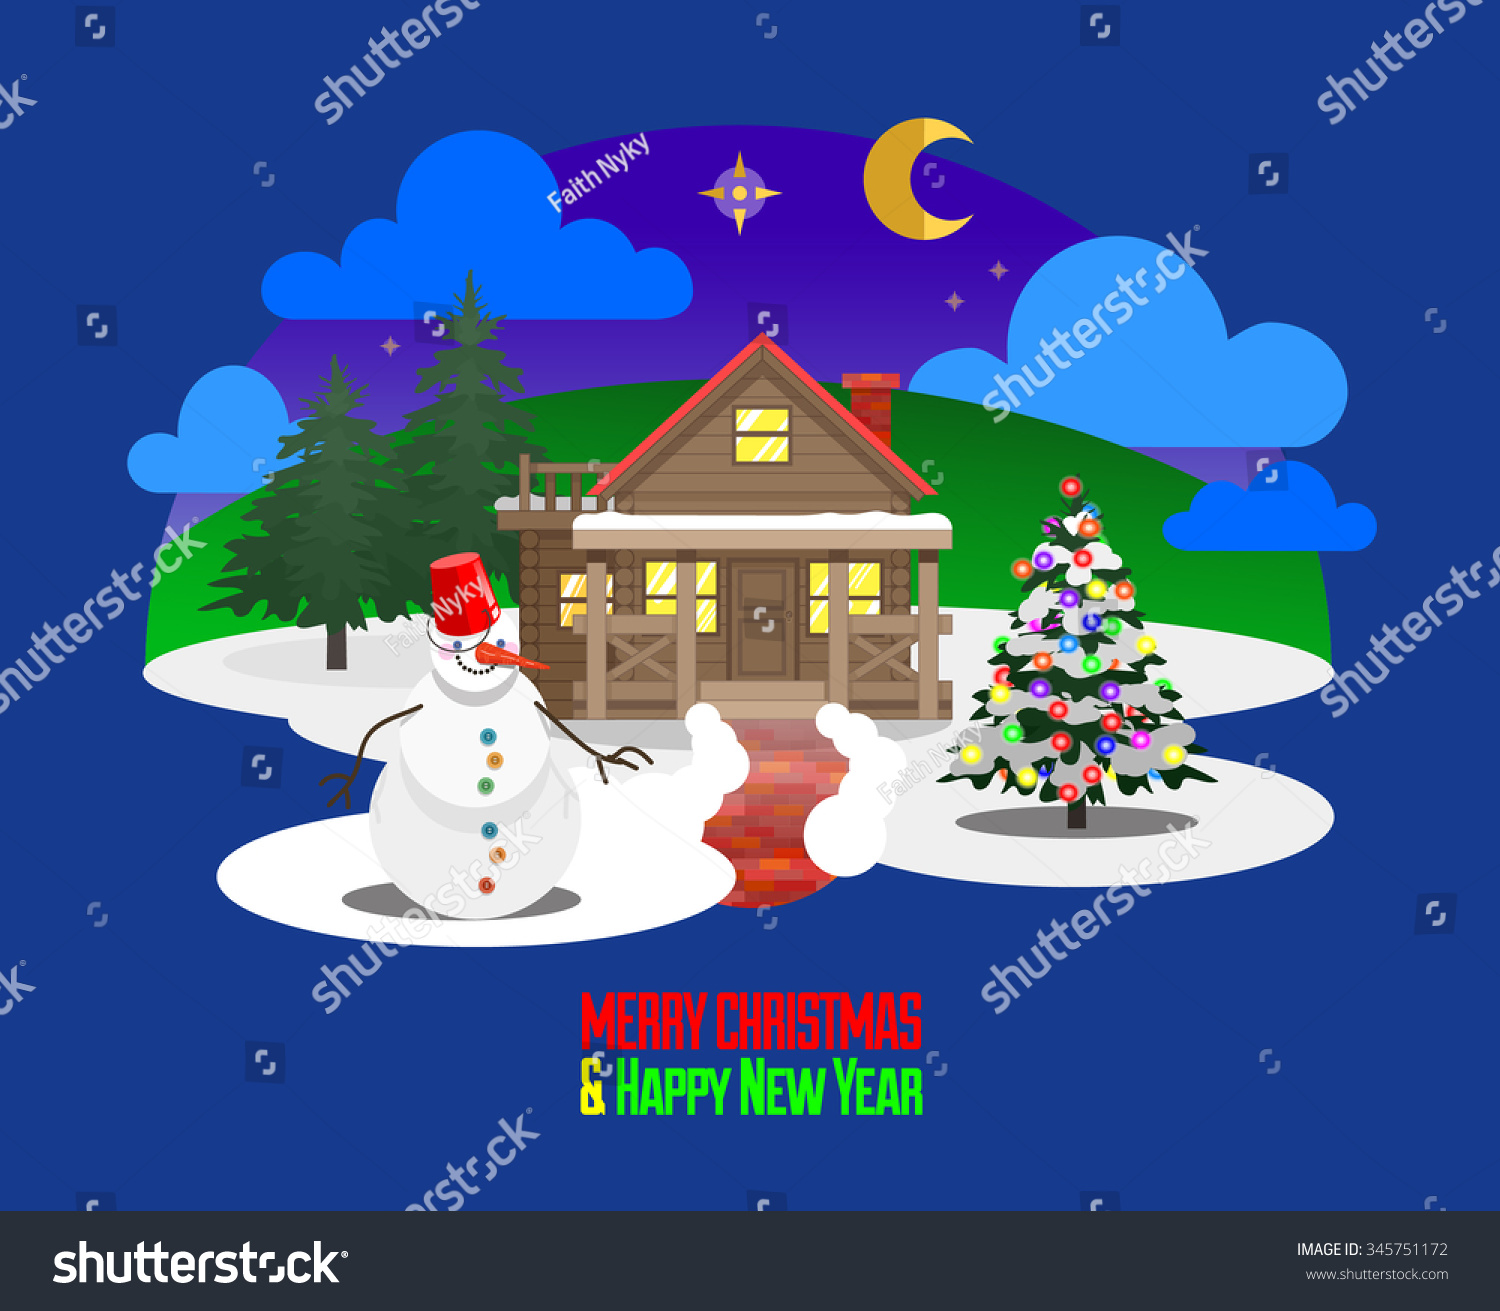 merry christmas and happy new year greetings card christmas eve scene first star